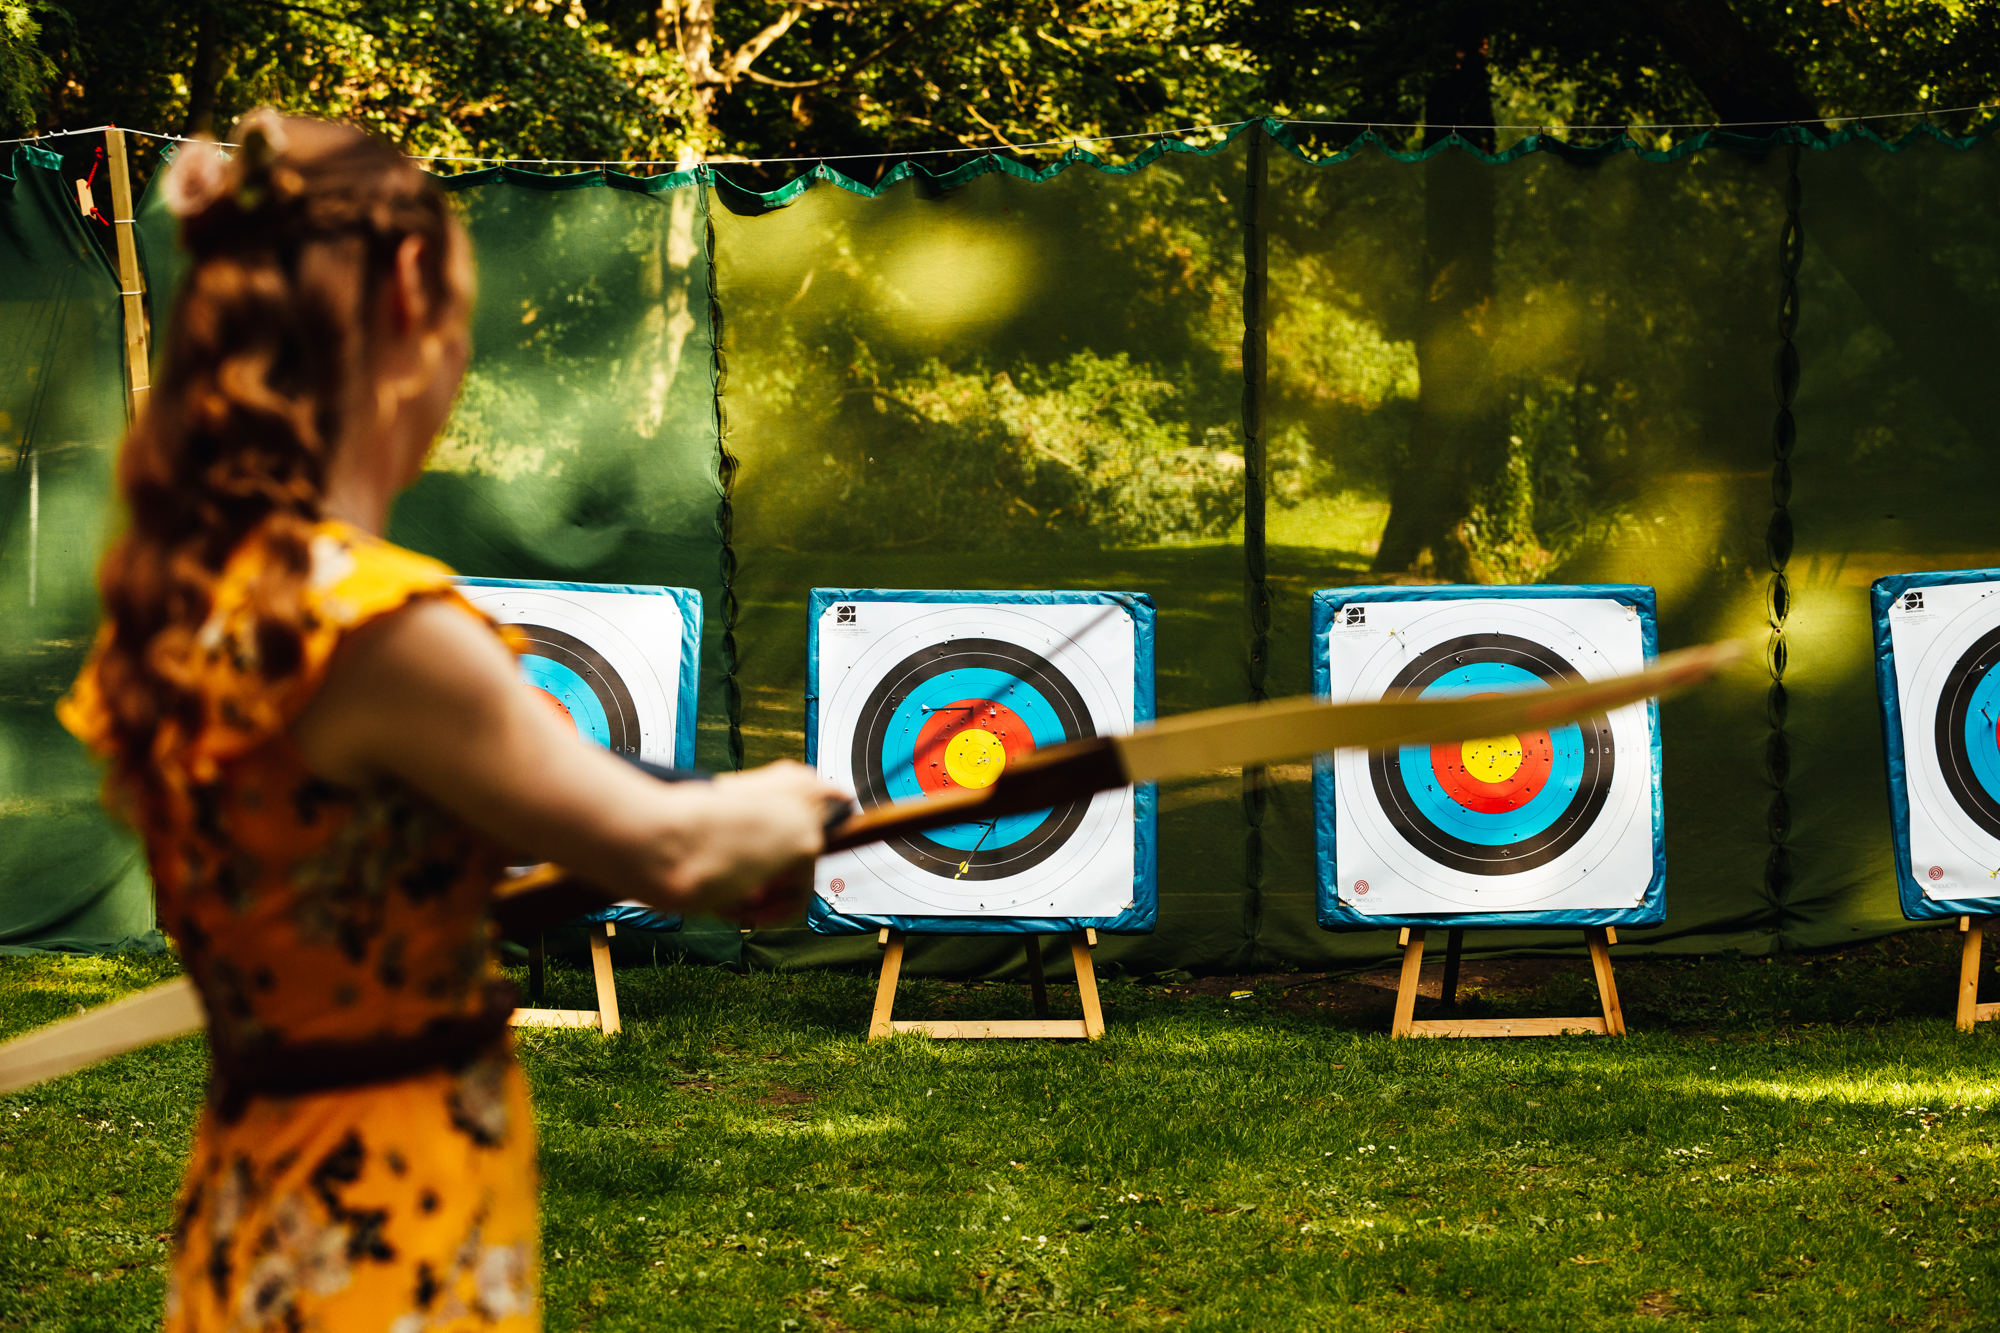 Relaxed Wedding - Games for guests, archery is a lot of fun here is a woman shooting an arrow